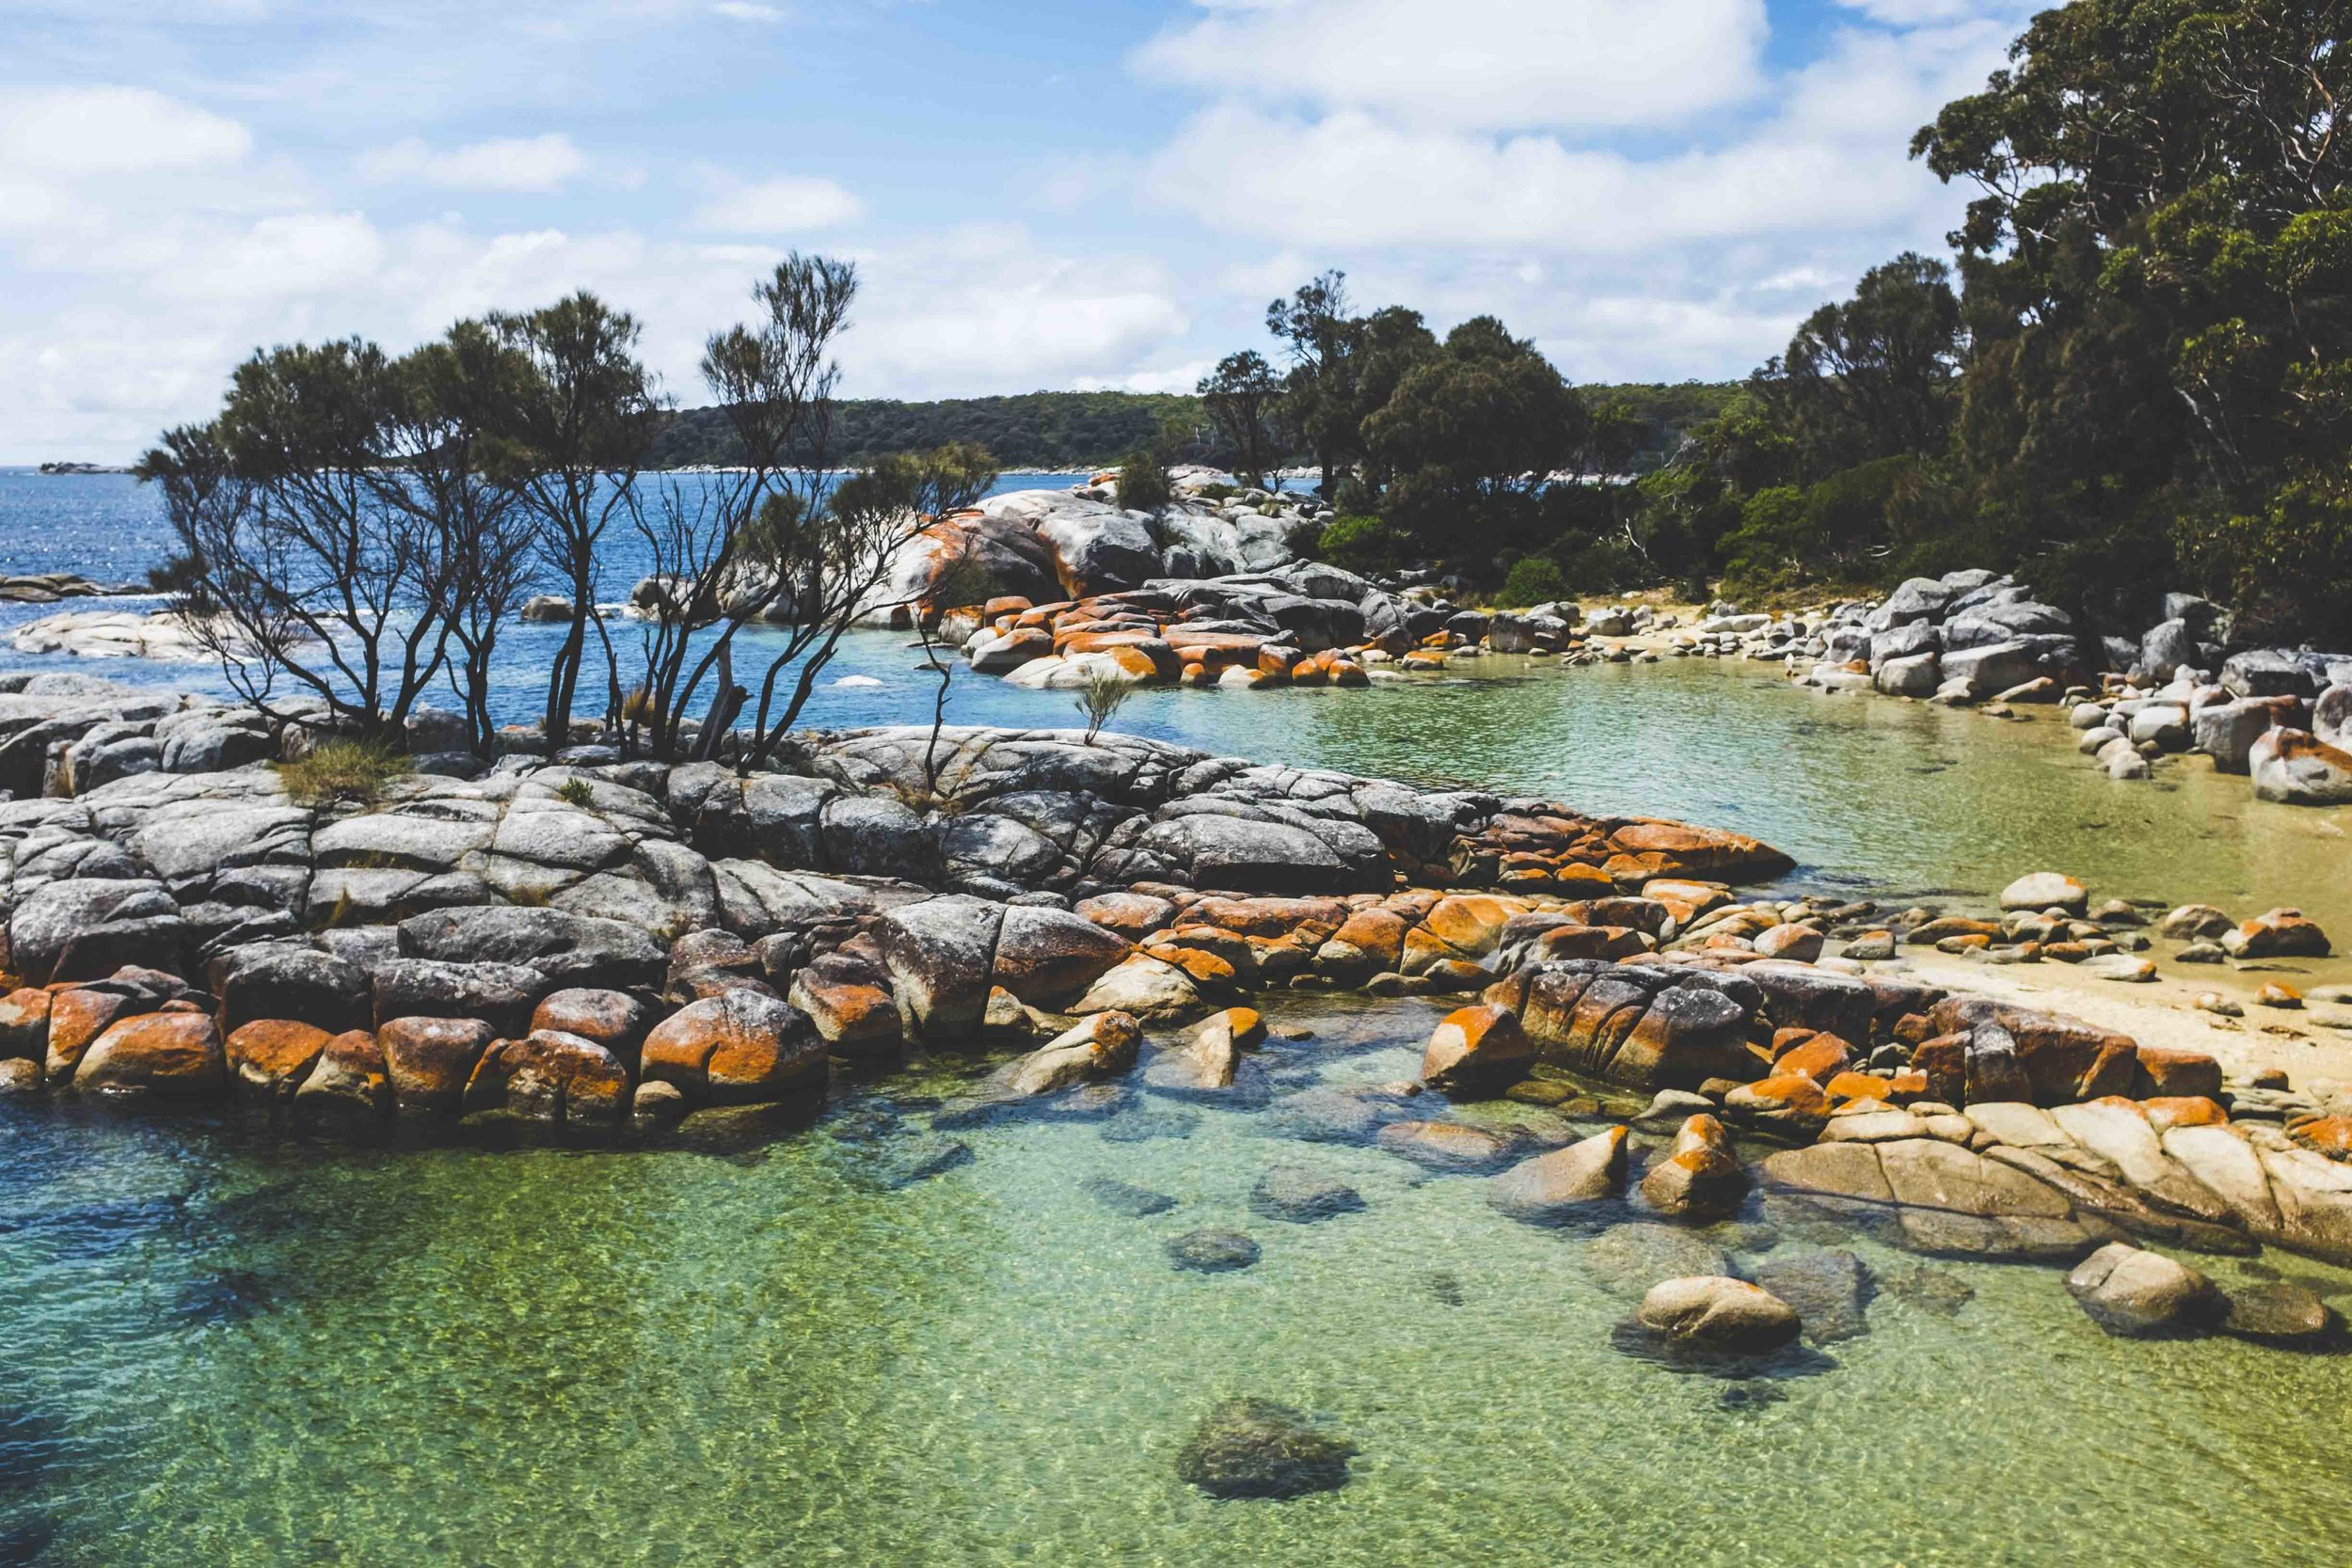 Bay of Fires at Binalong Bay. Photo: Marine Raynard